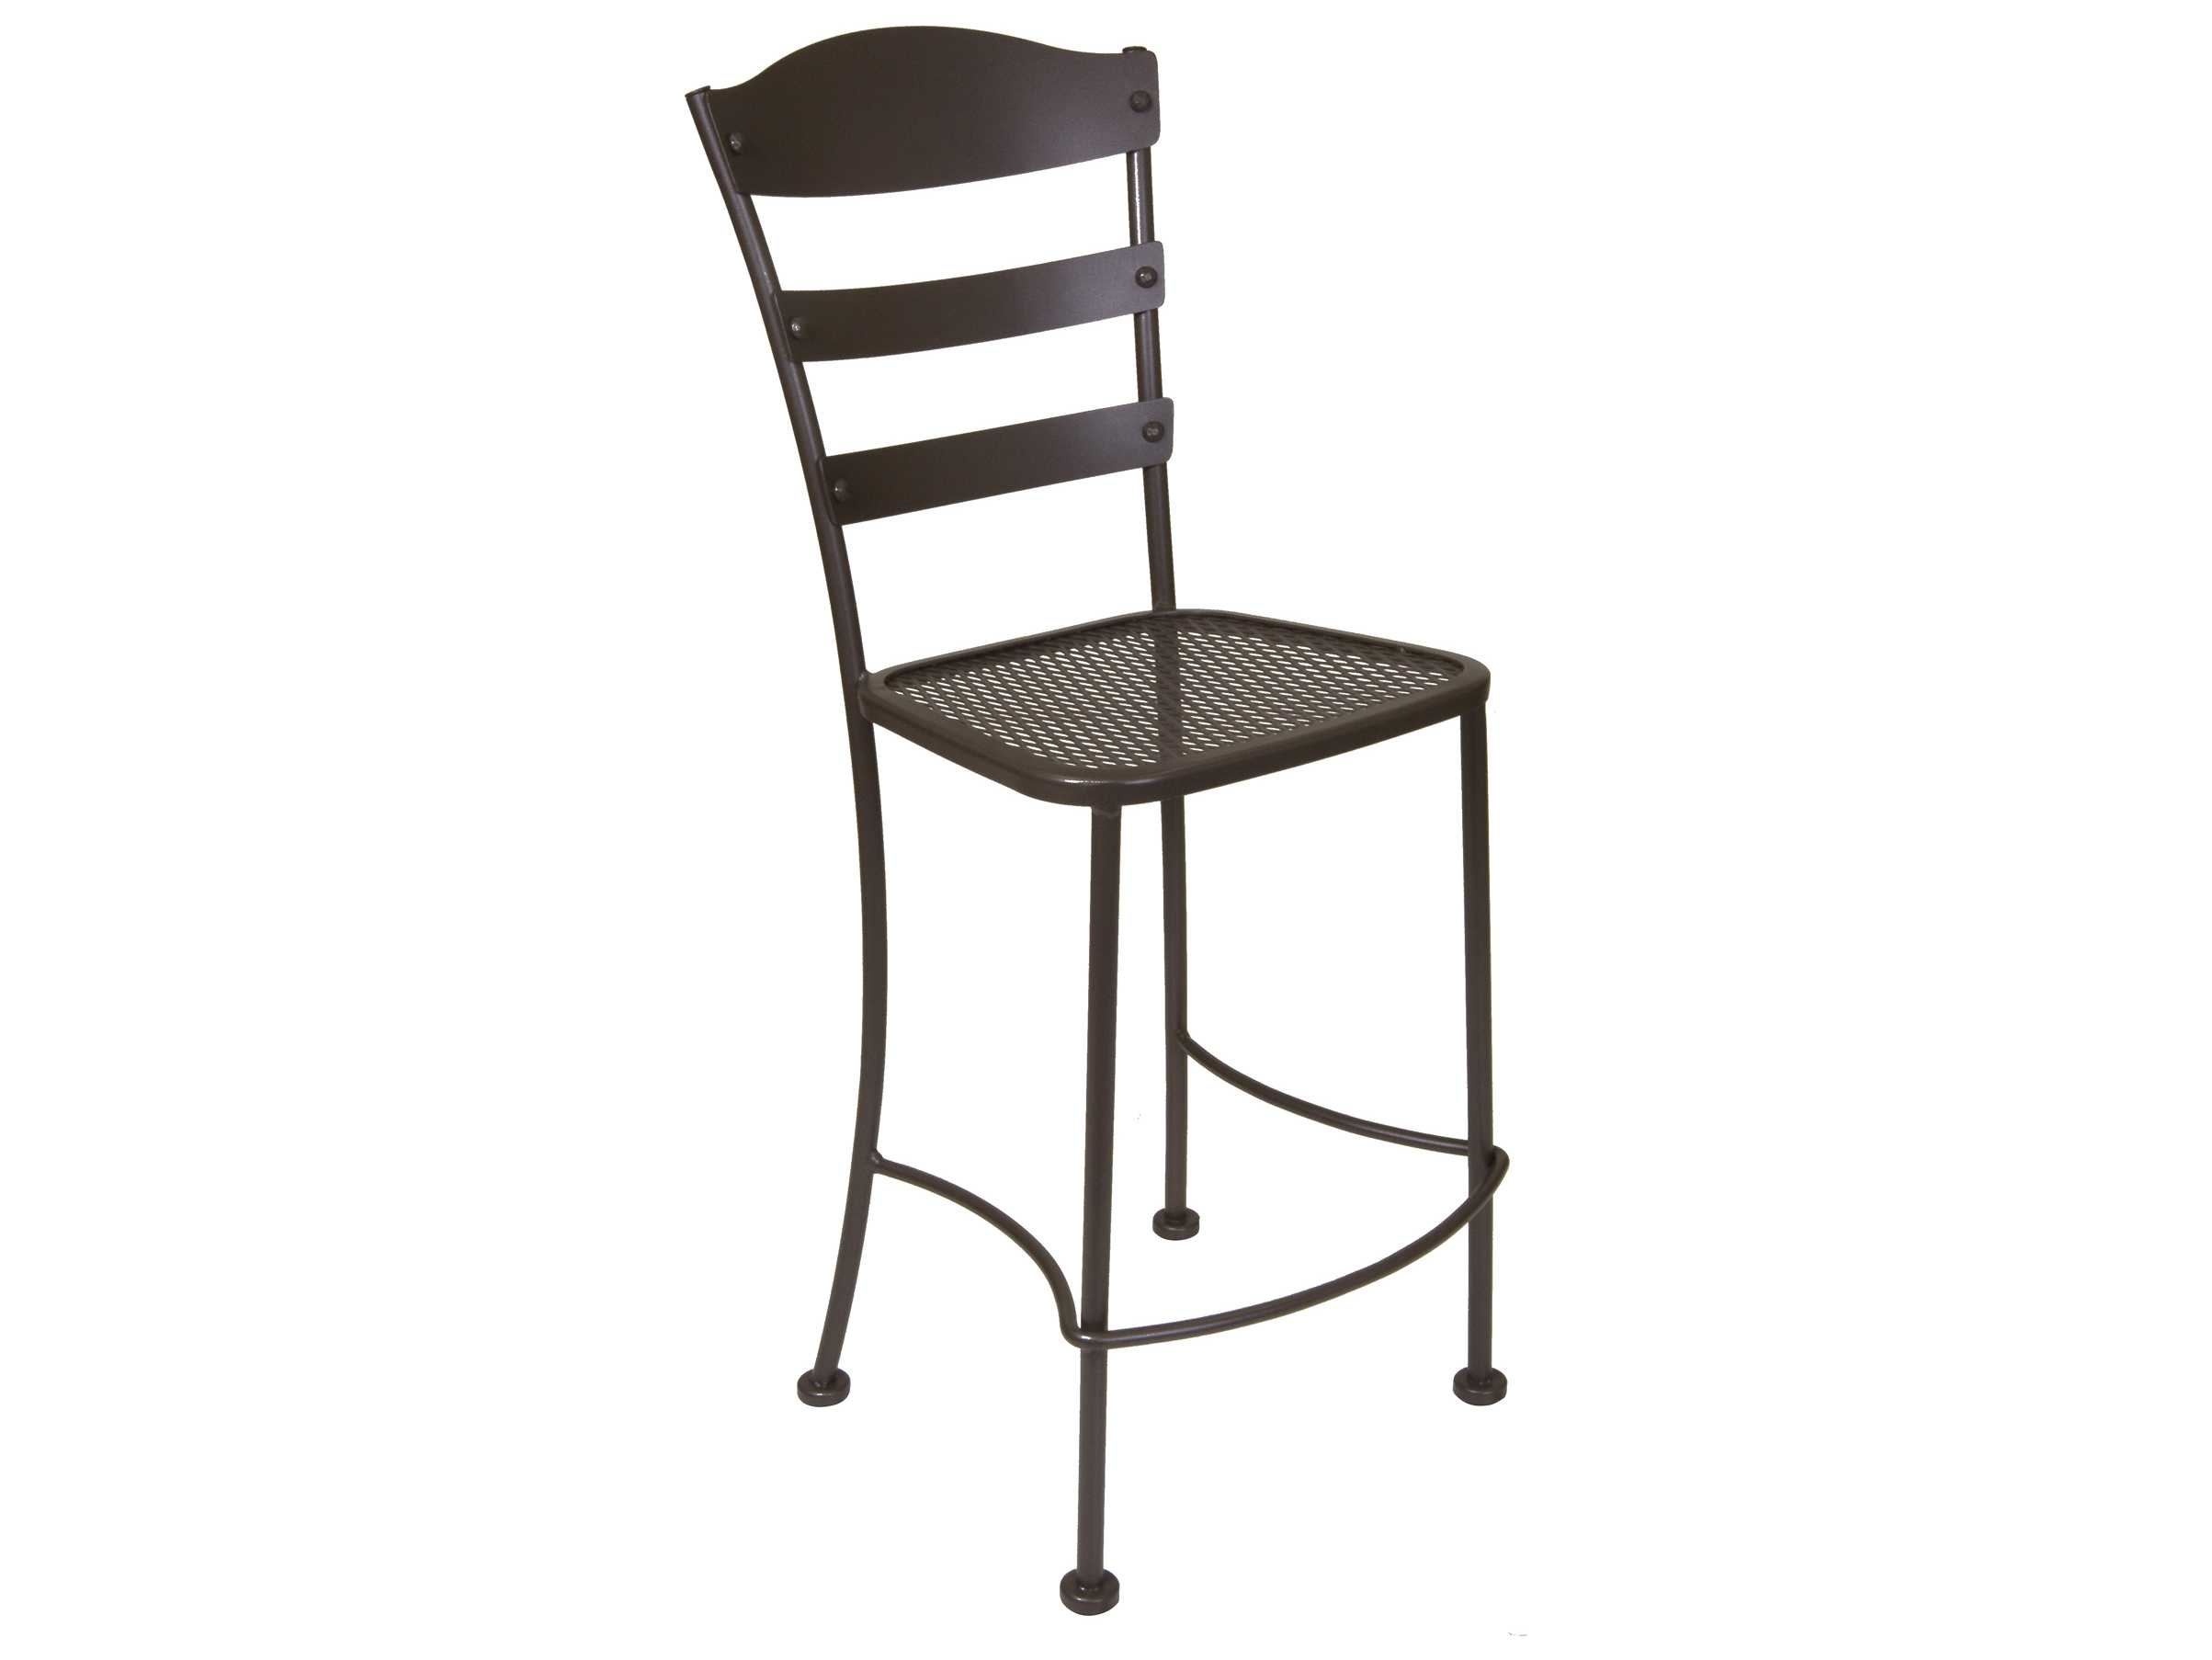 Ow lee chalet wrought iron bar stool bs